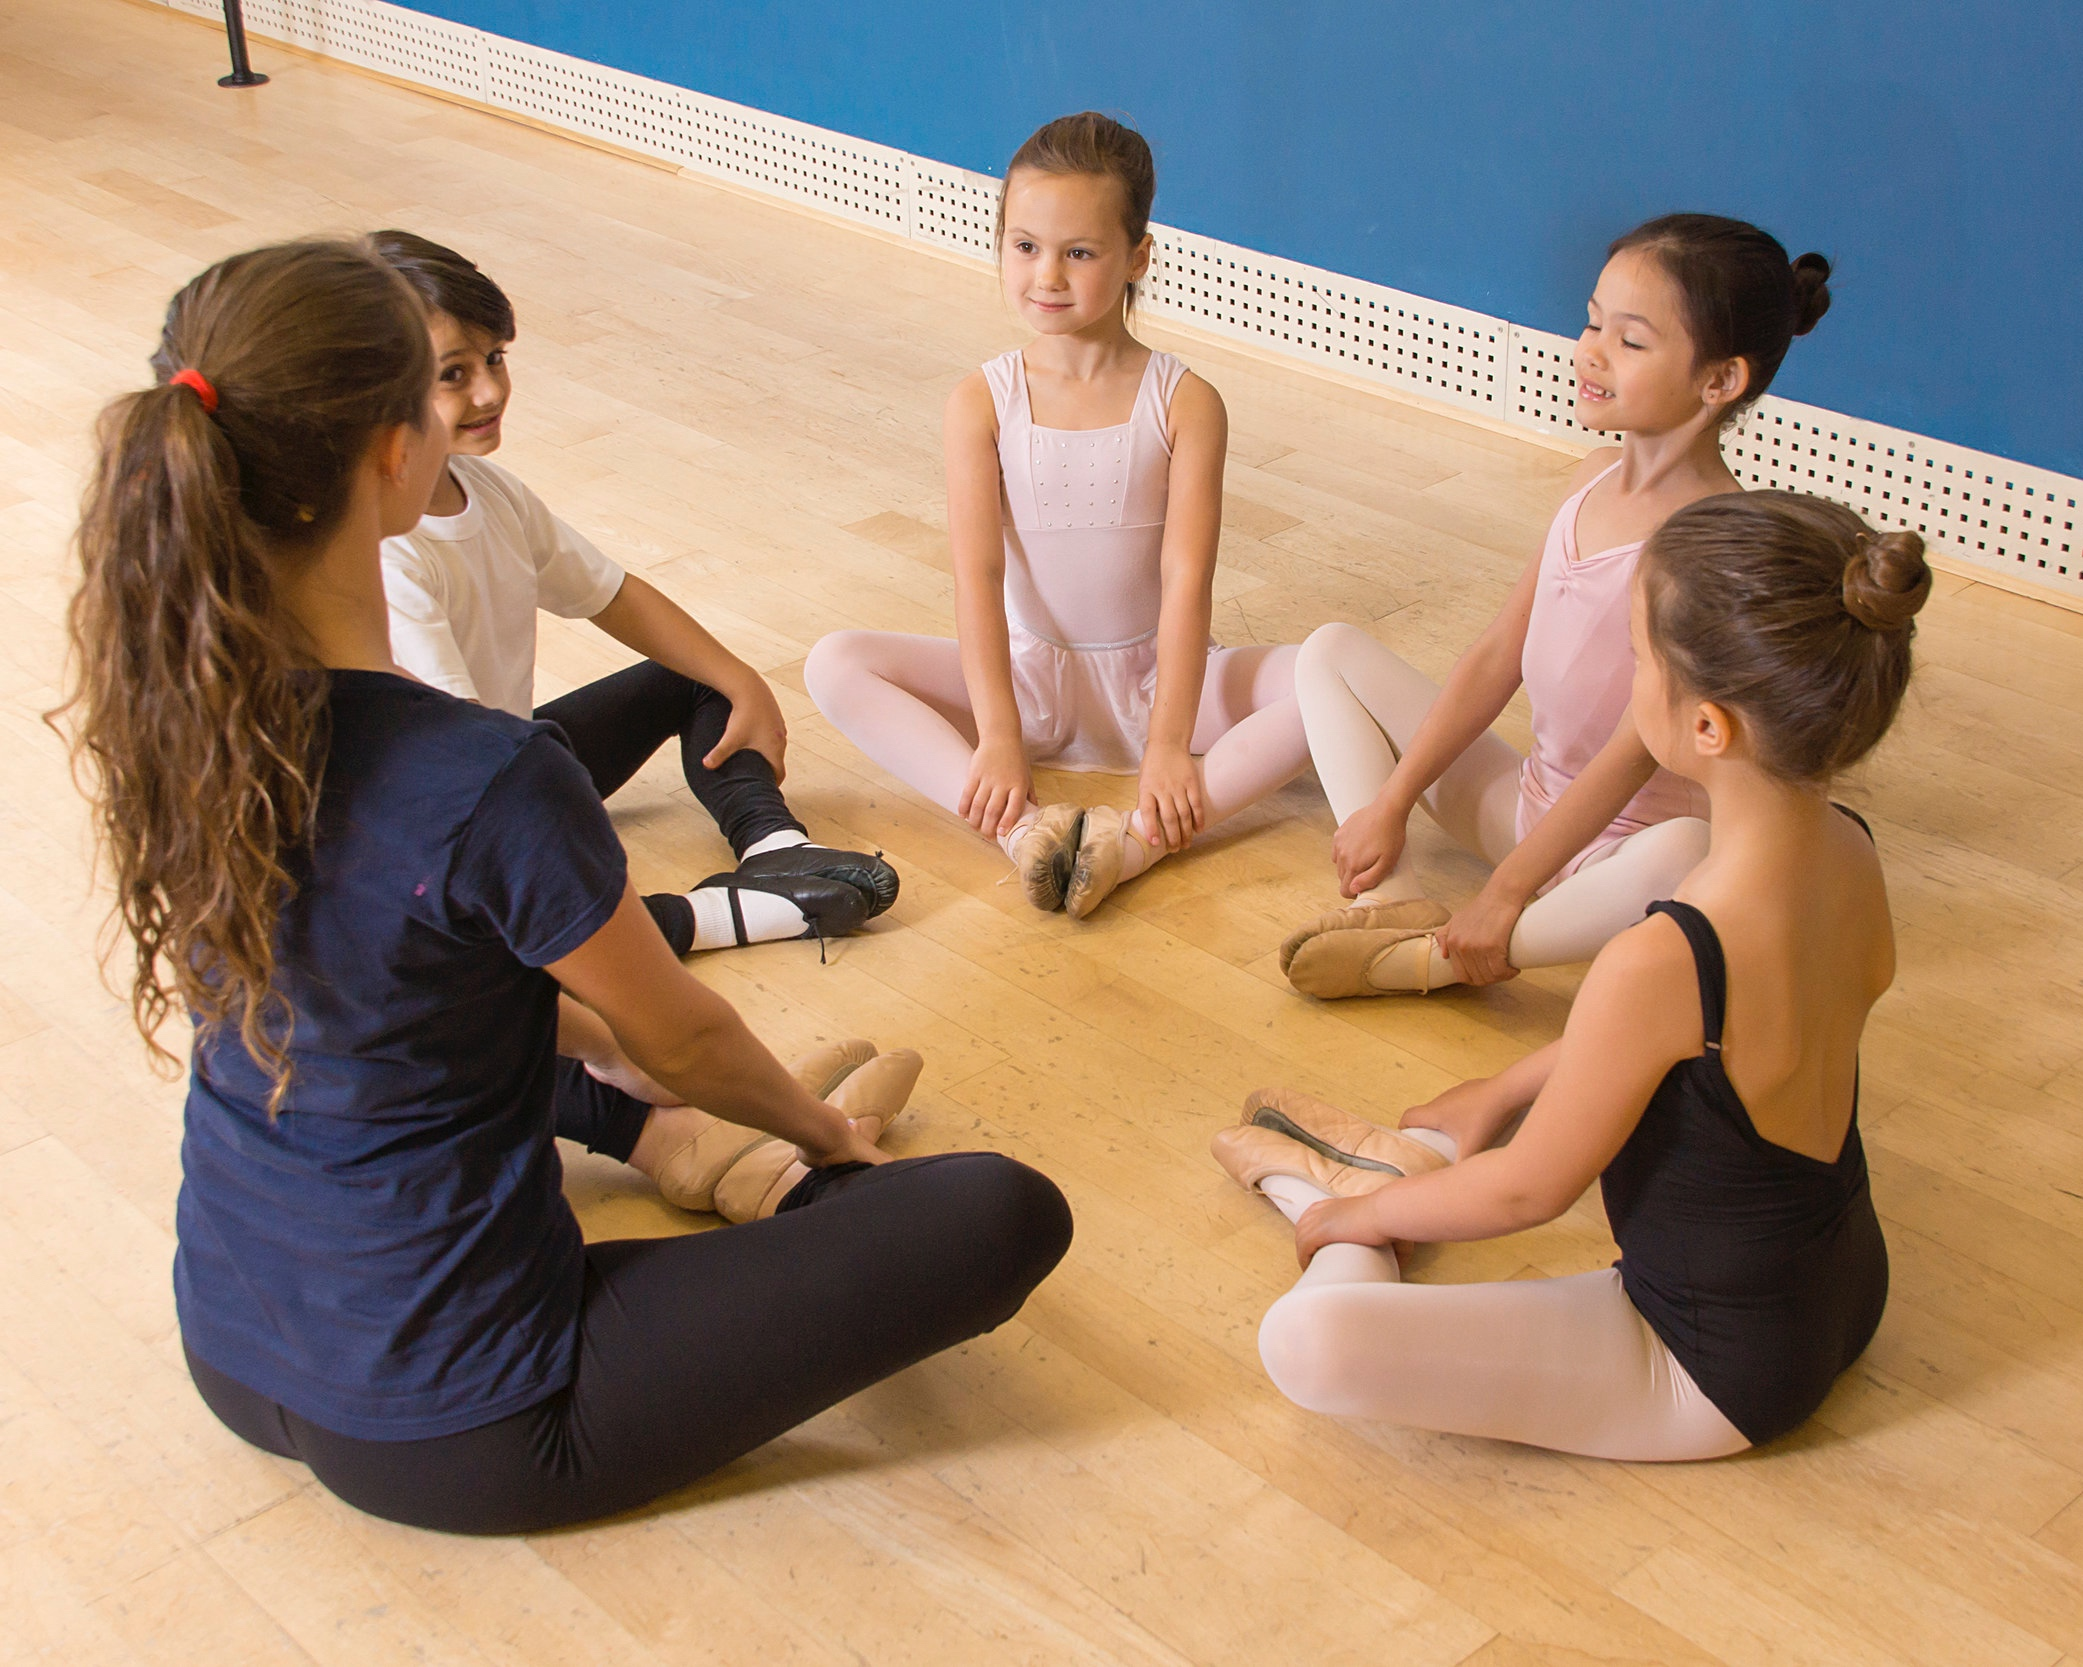 CREATIVE MOVEMENT - Students explore movement, rhythm, and creativity through exercises created to build expressive minds and motor skills while instilling a love for dance. For ages 2-3. Must be 2 by September. This is a non-recital class.CREATIVE MOVEMENT CLASS ATTIRE: Comfortable clothing. Barefoot or Ballet shoes required (no socks)